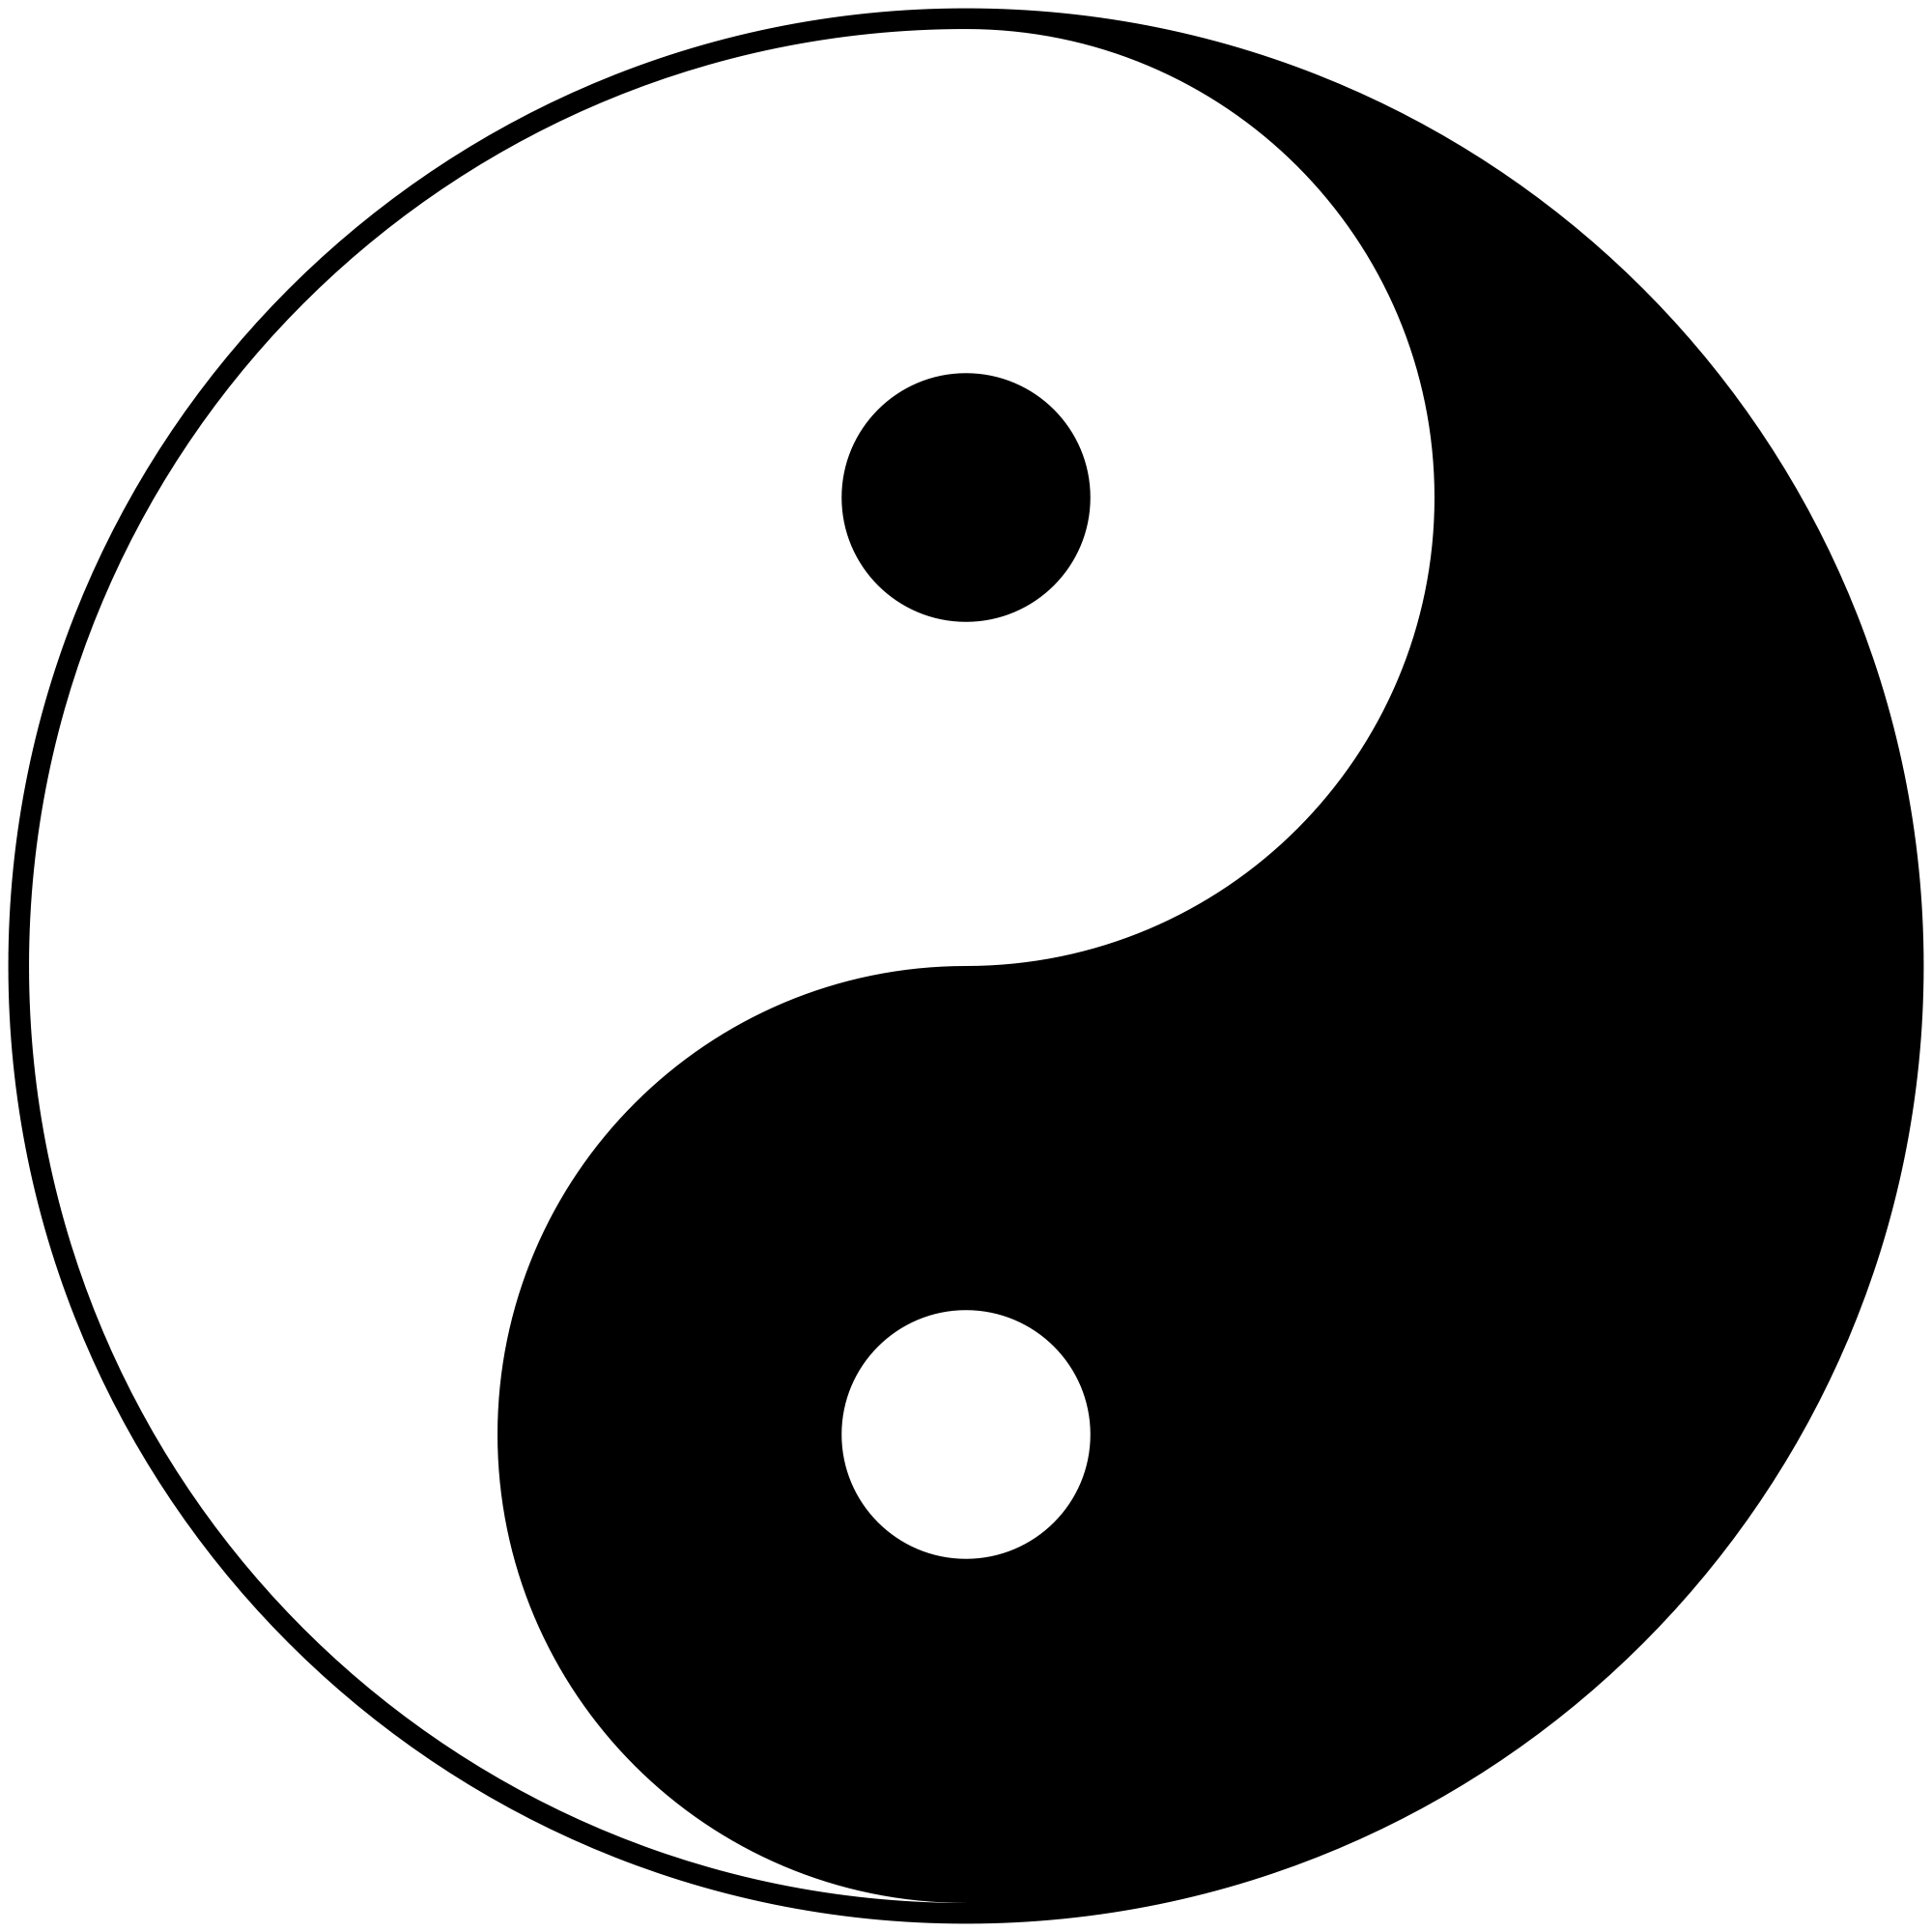 Logo Audition Atlantique - inspiration Yin-Yang